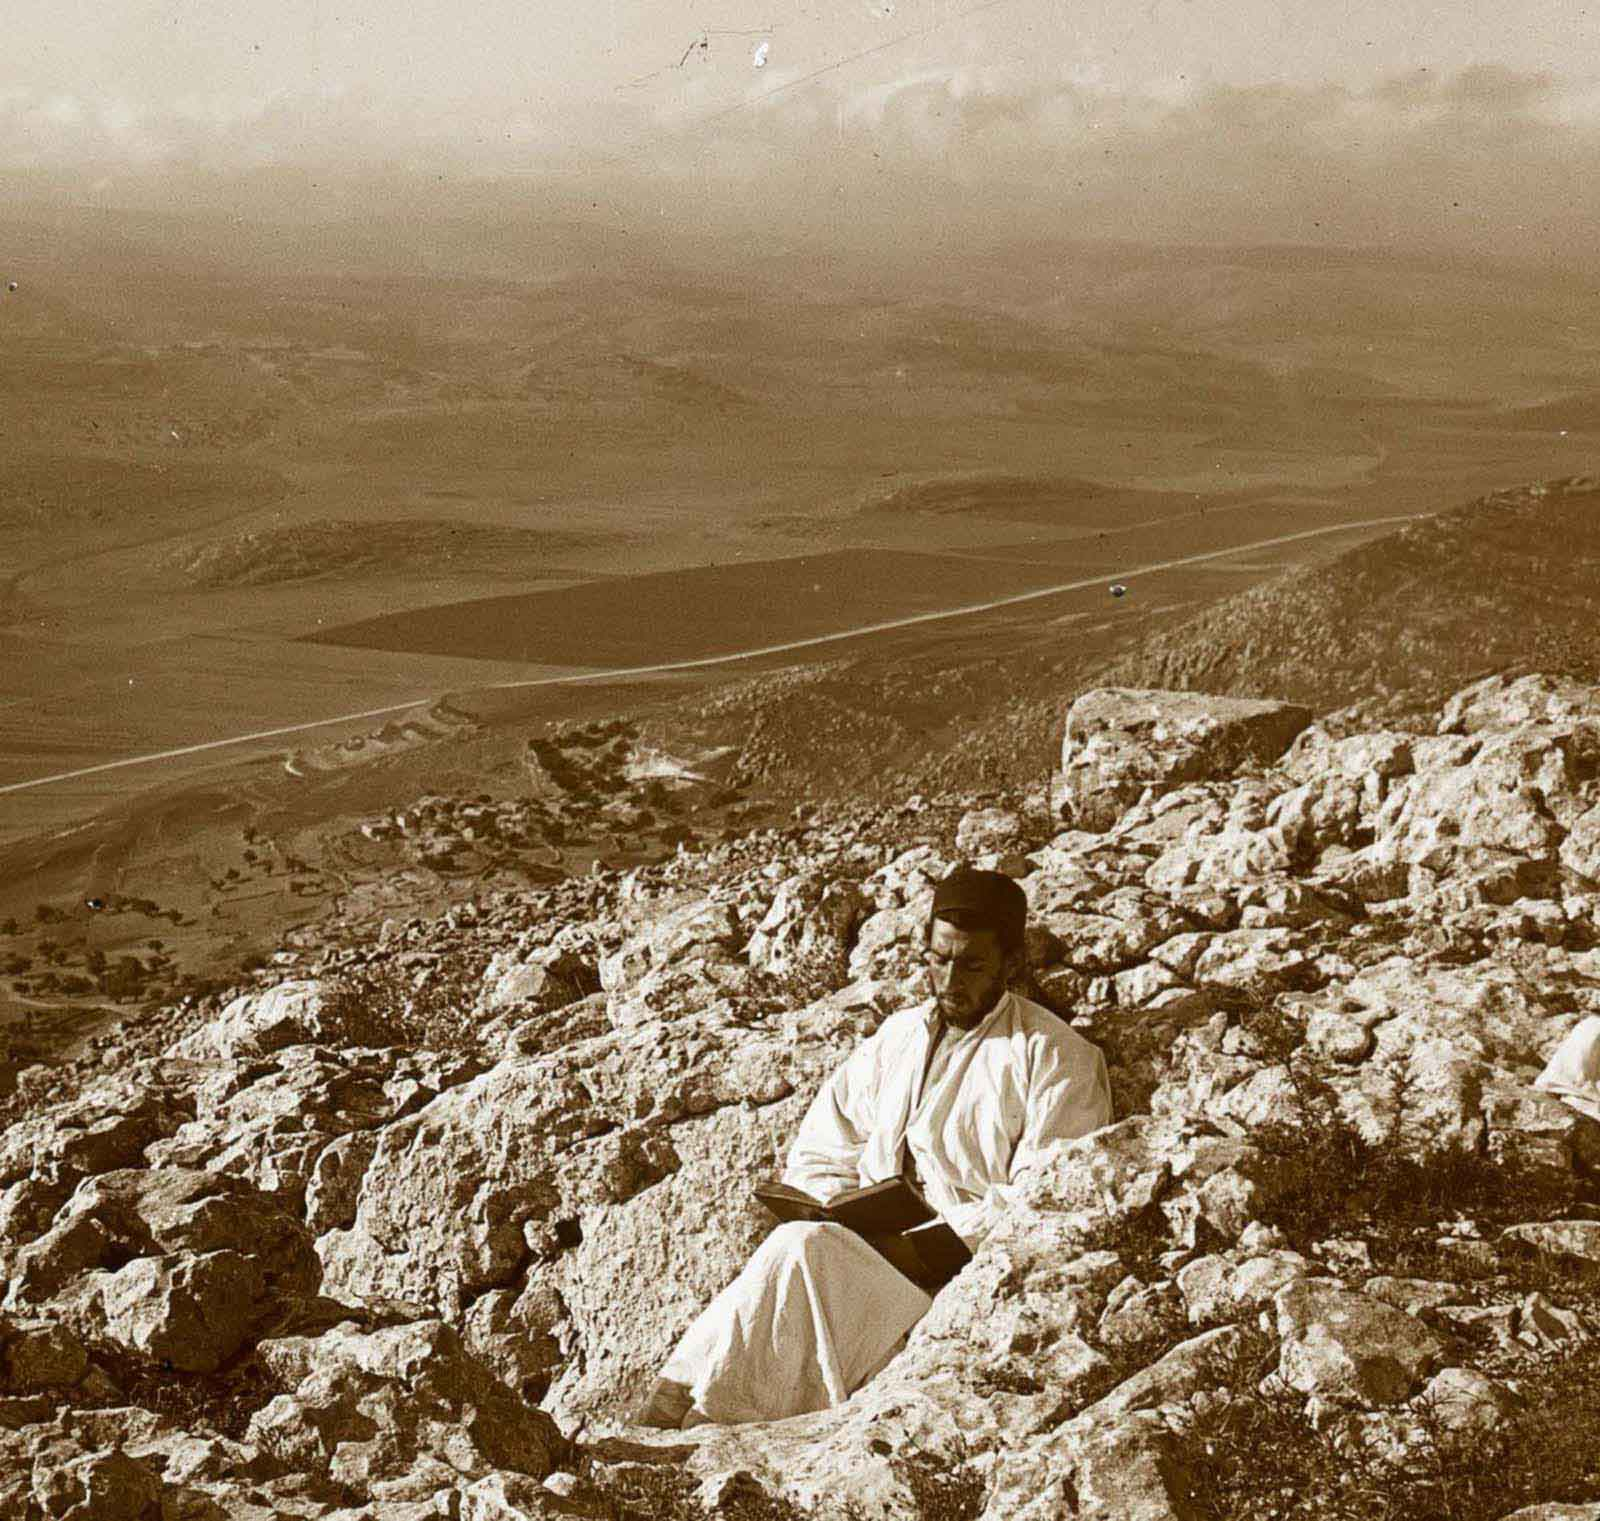 mountains holy land old photographs